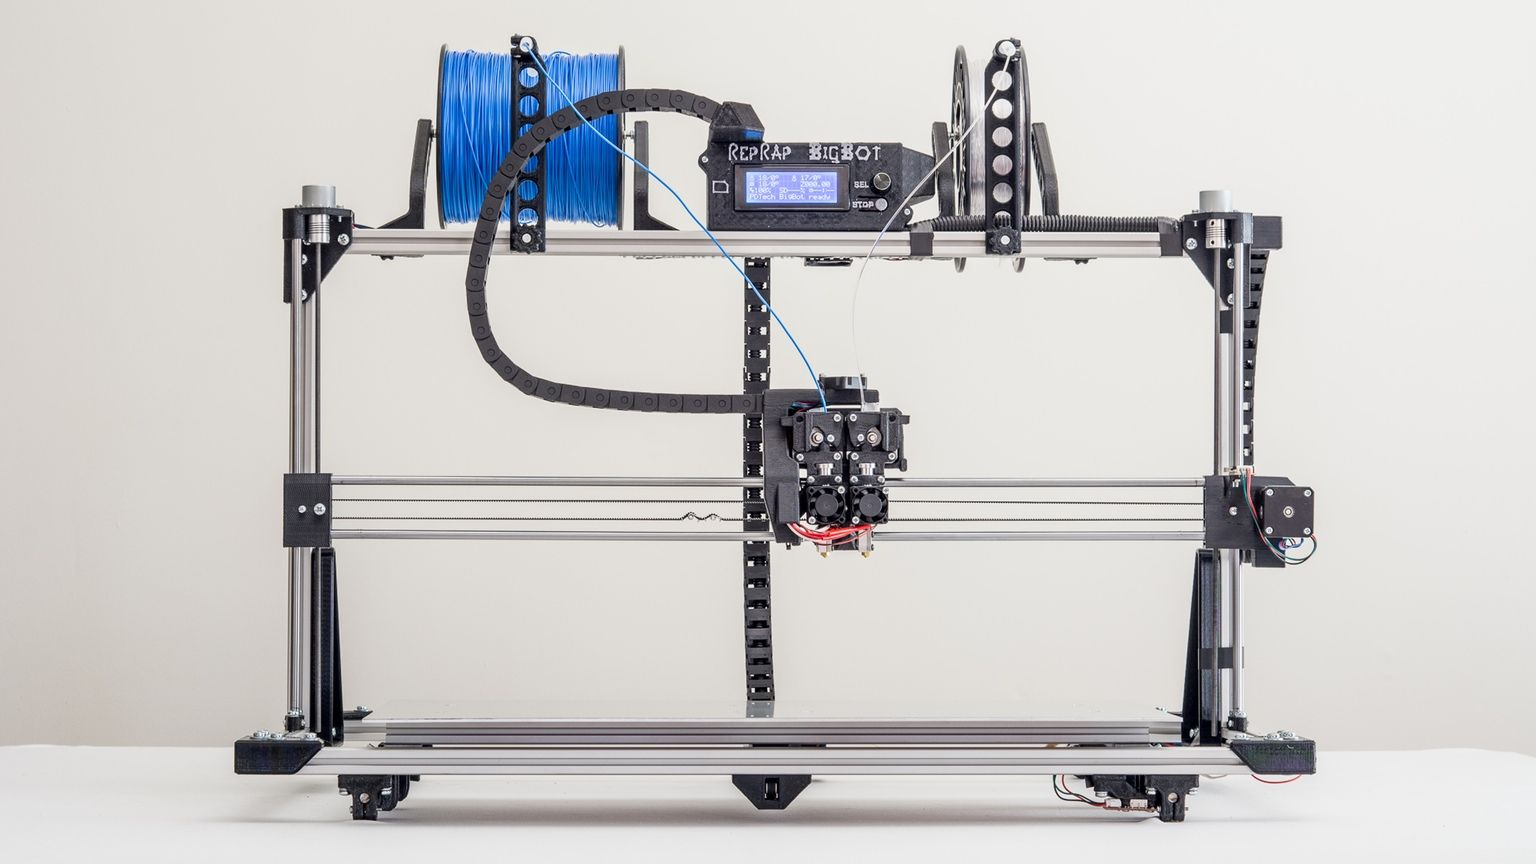 Large scale 3D printers based on the widely popular and